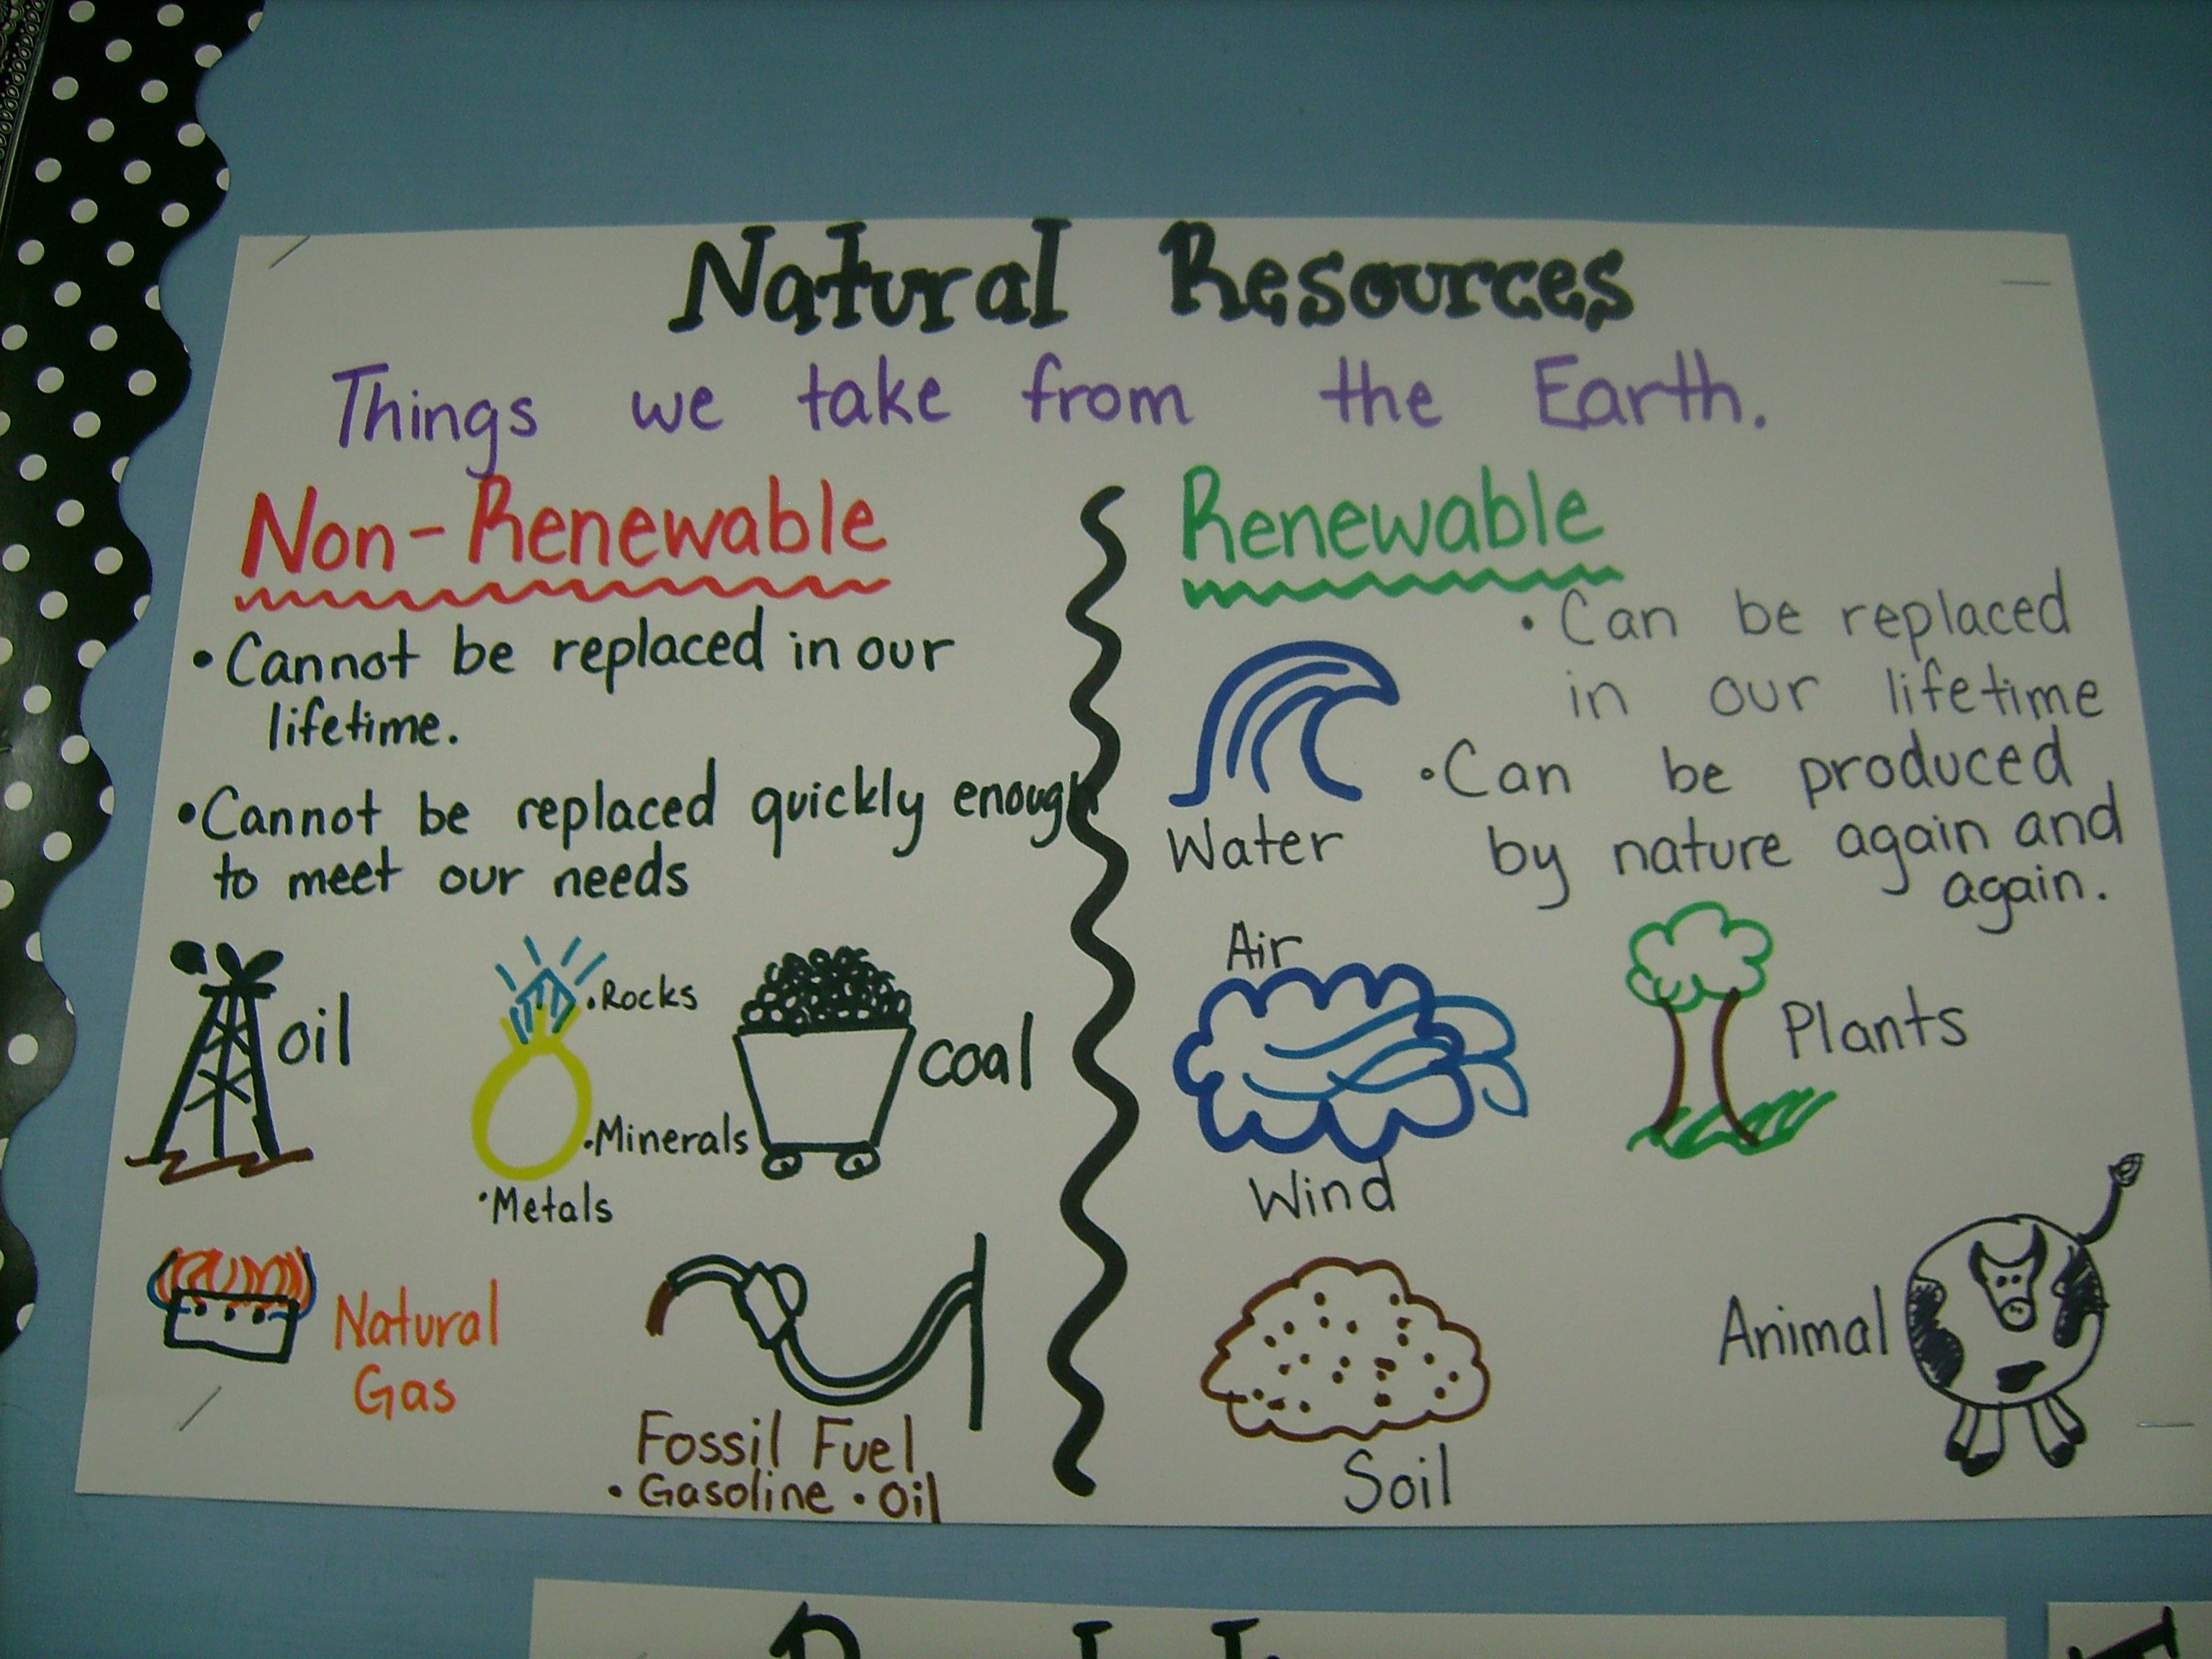 Best 25 Natural resources ideas on Pinterest  Non renewable